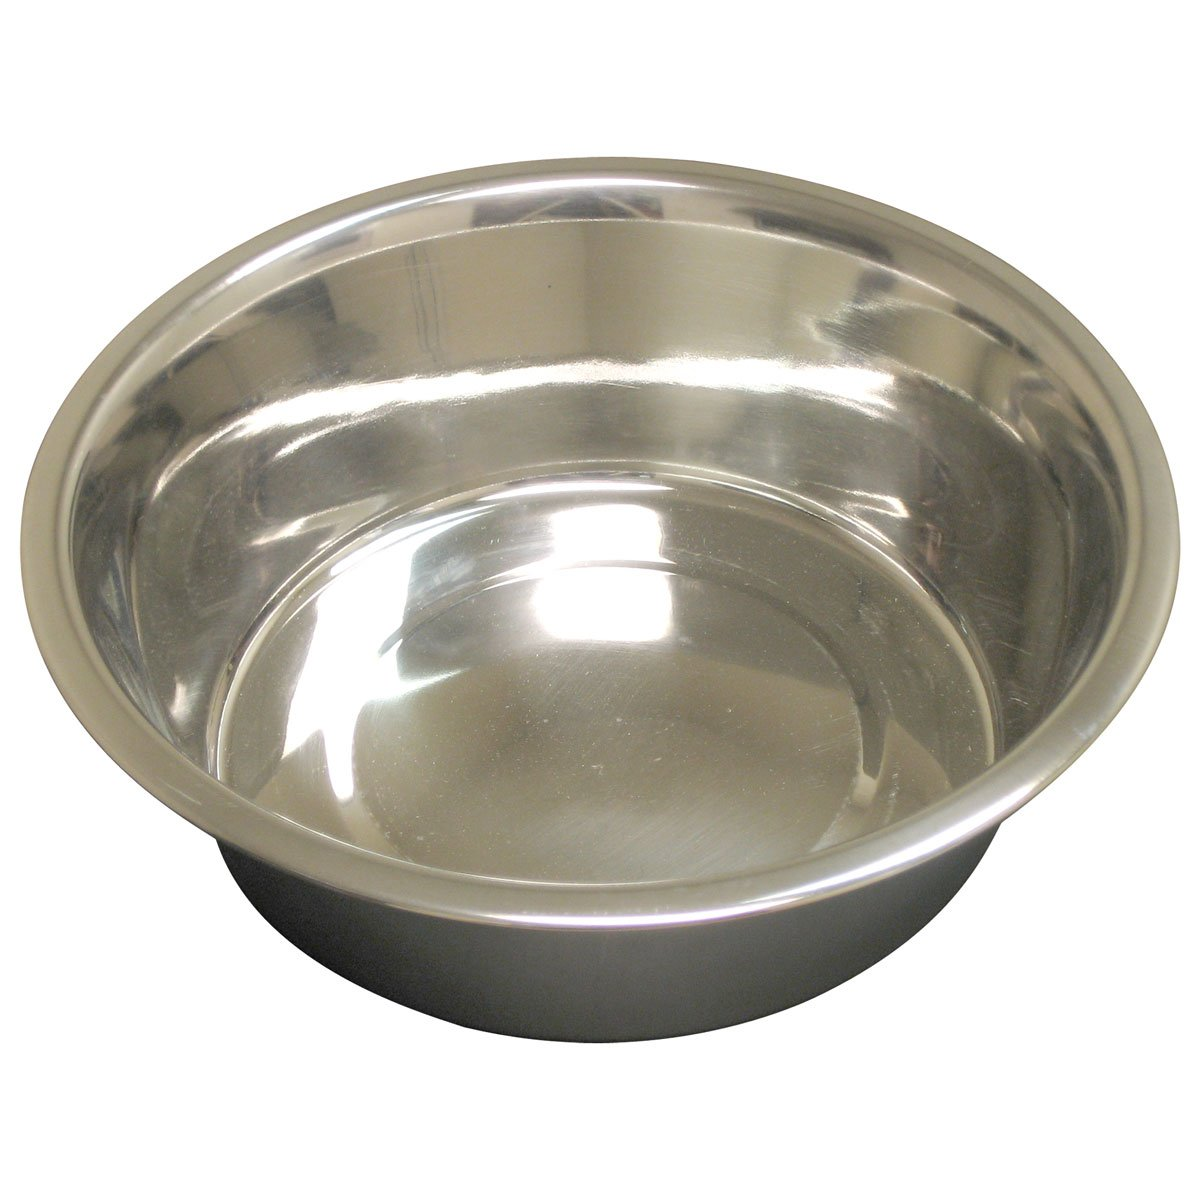 QT Dog Standard Stainless Steel Food Bowl, 5-Quart